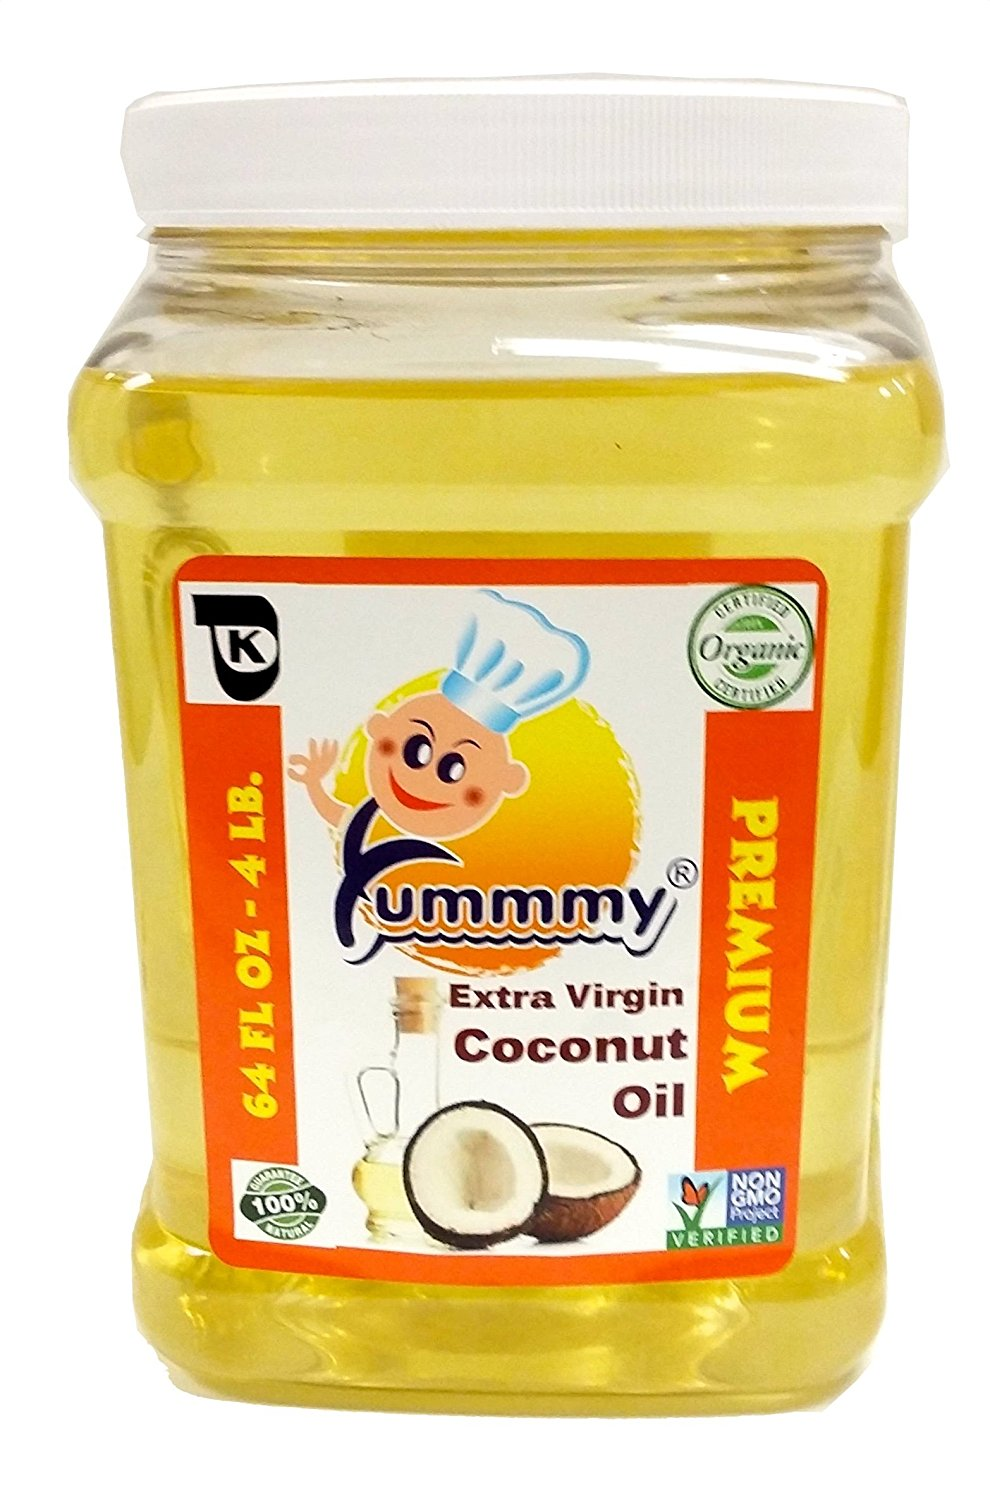 Yummmy Extra Virgin Coconut Oil